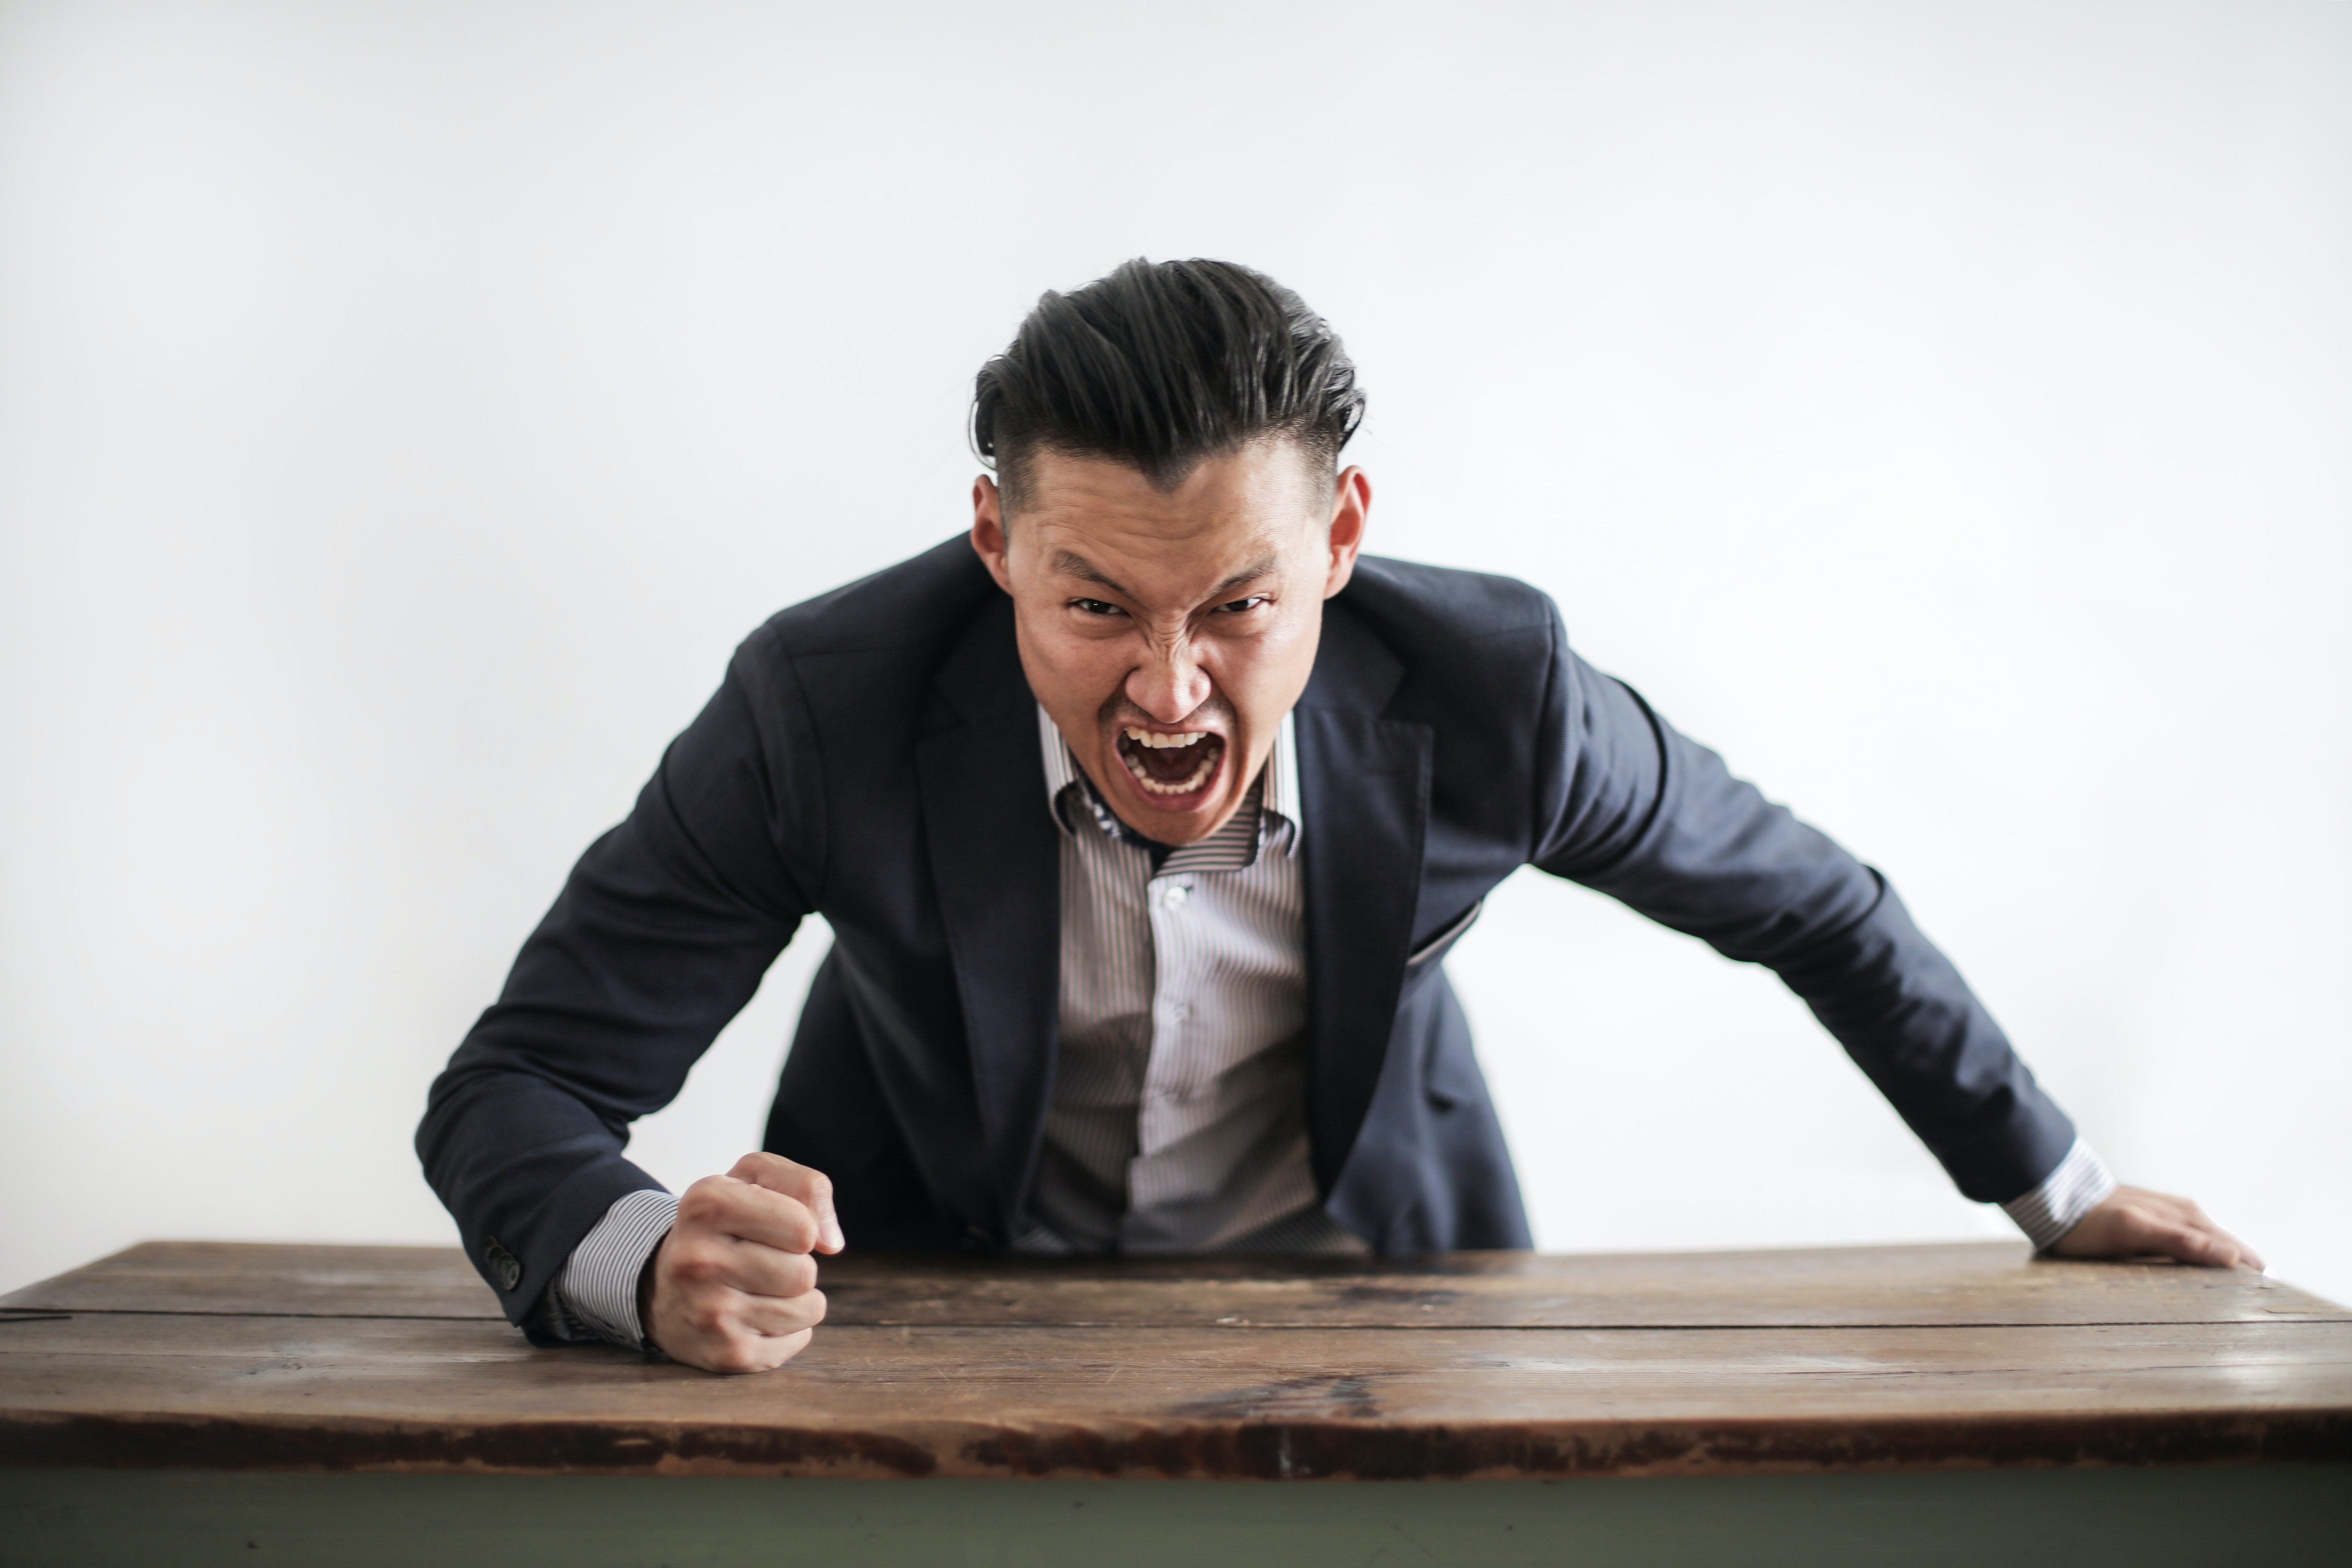 Pictured - An upset executive yelling at the camera | Source: Pexels